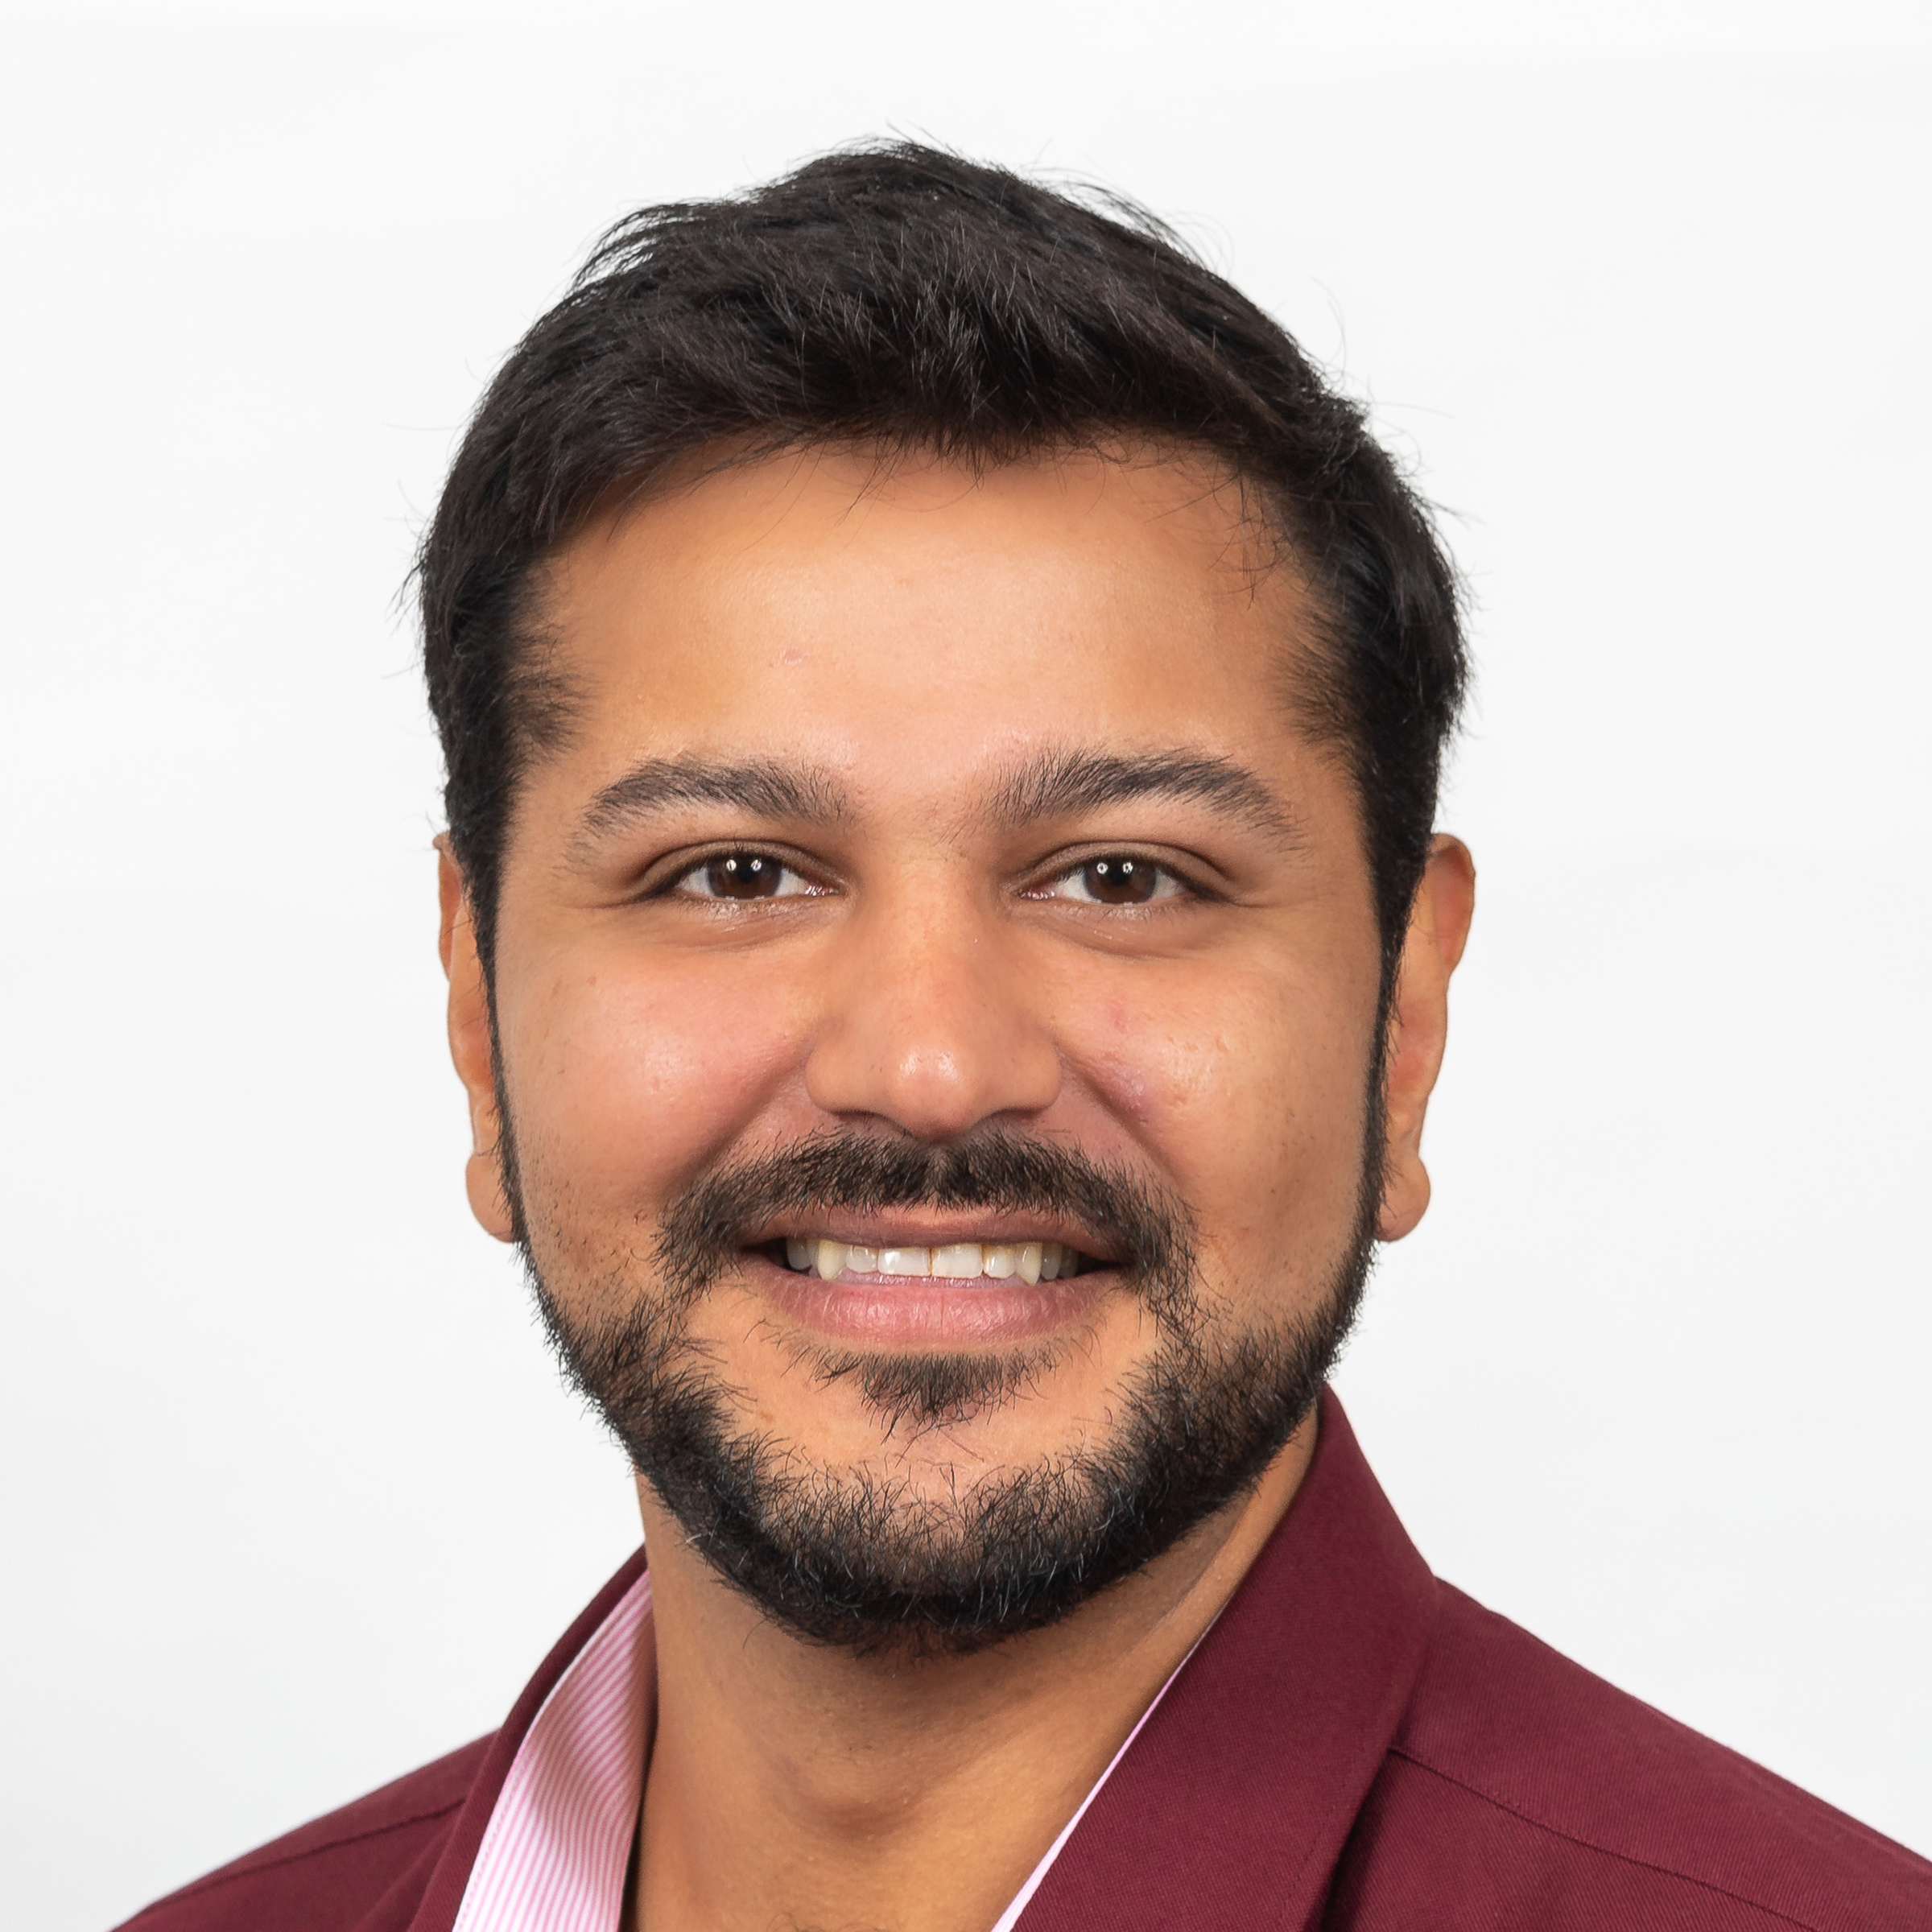 RIAZ KARIM,  LEAD ENGINEER  Riaz is a co-founder and Lead Engineer at Hivemind, building out new platform features, and managing the platform infrastructure.   READ MORE